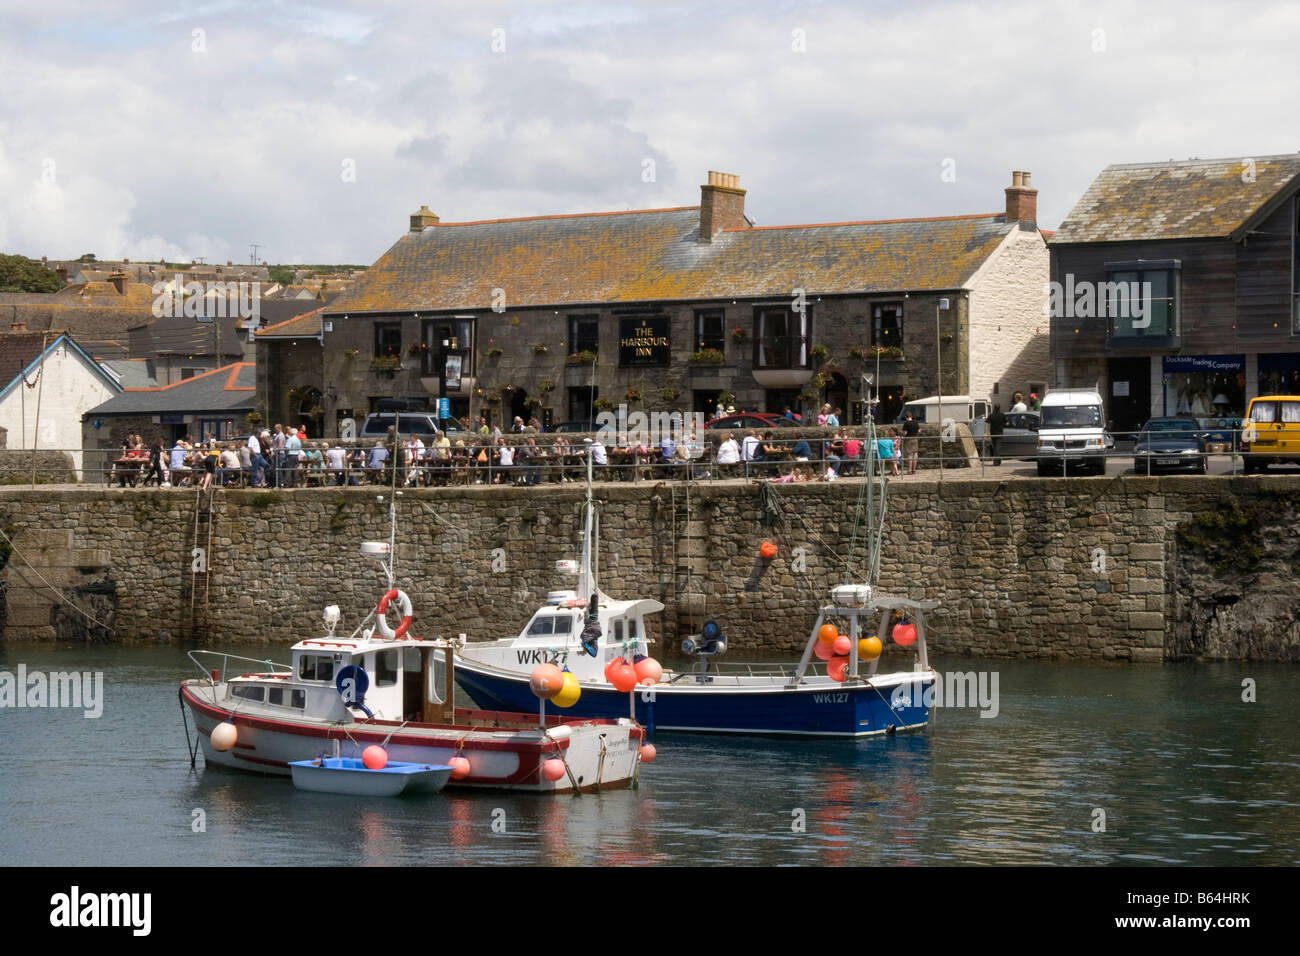 Boats in harbour of Porthleven, Cornwall, England, Great Britain, United Kingdom. - Stock Image